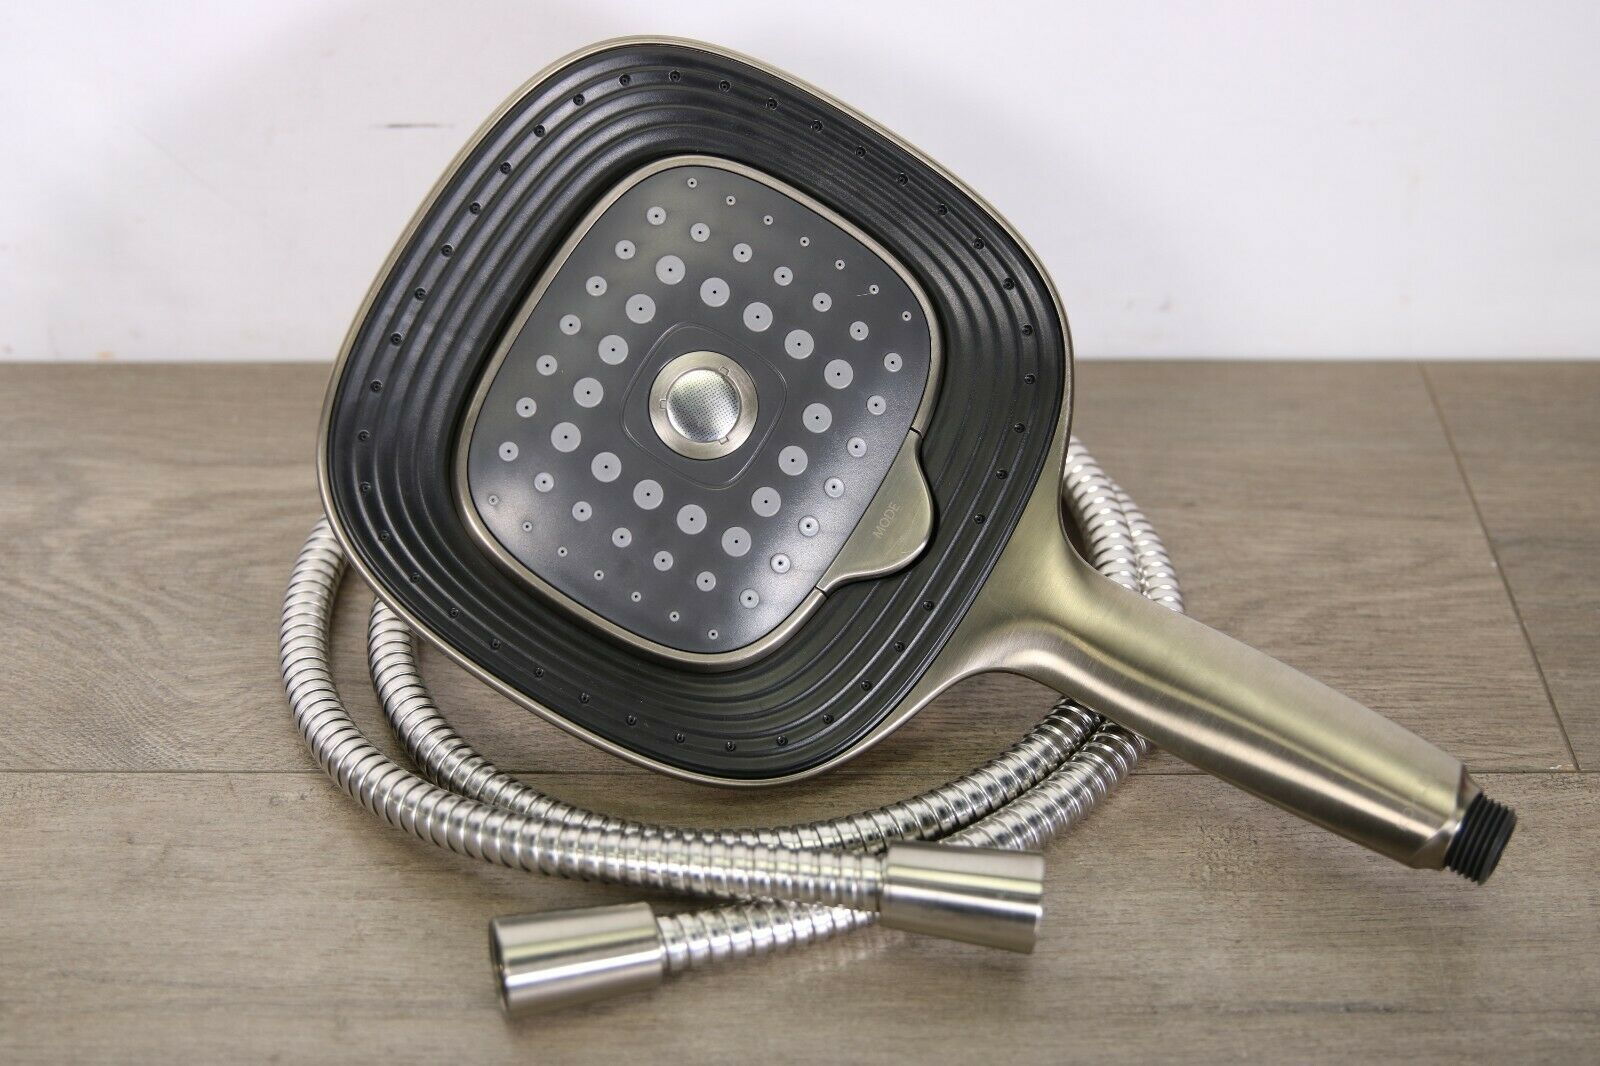 Kohler Converge Shower Head 2 In 1 Shower Head And Handshower